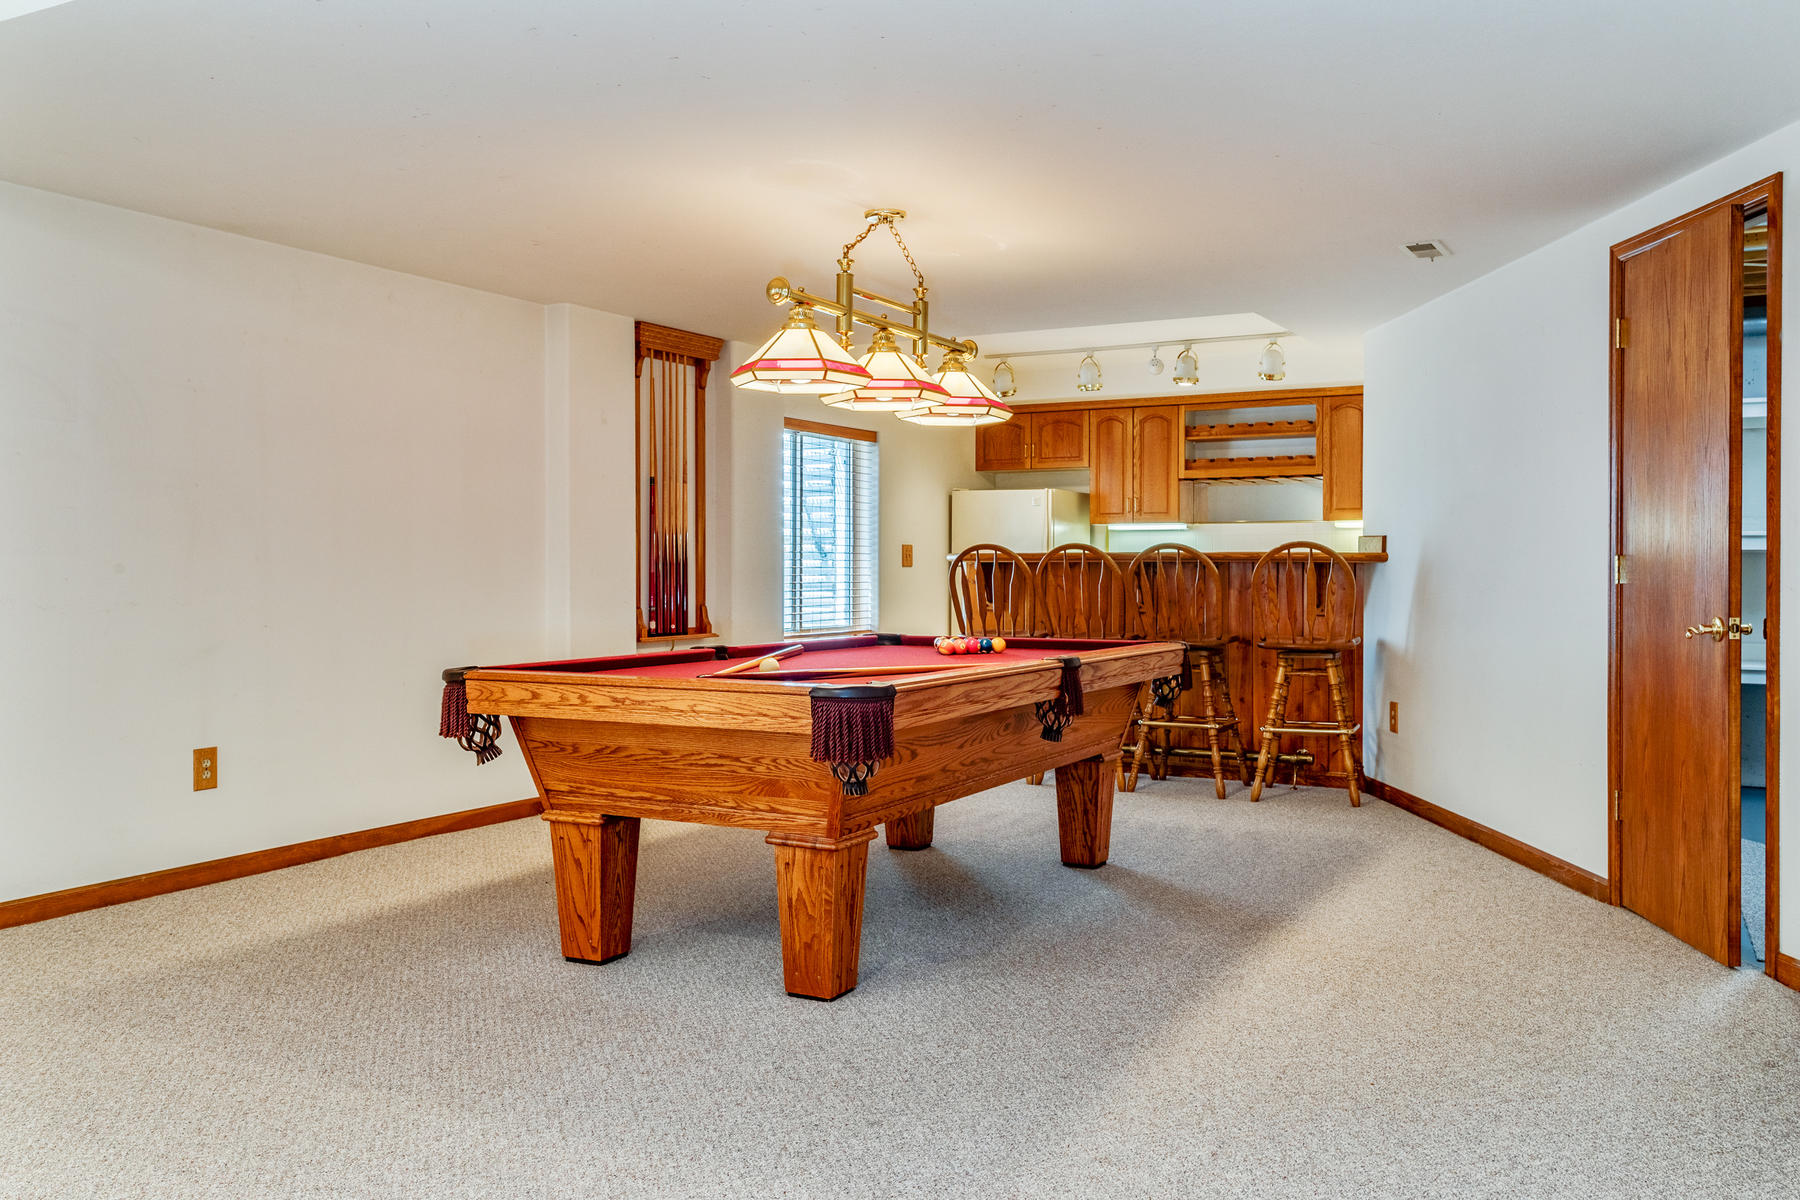 Space for Several Game Tables & Home Theatre